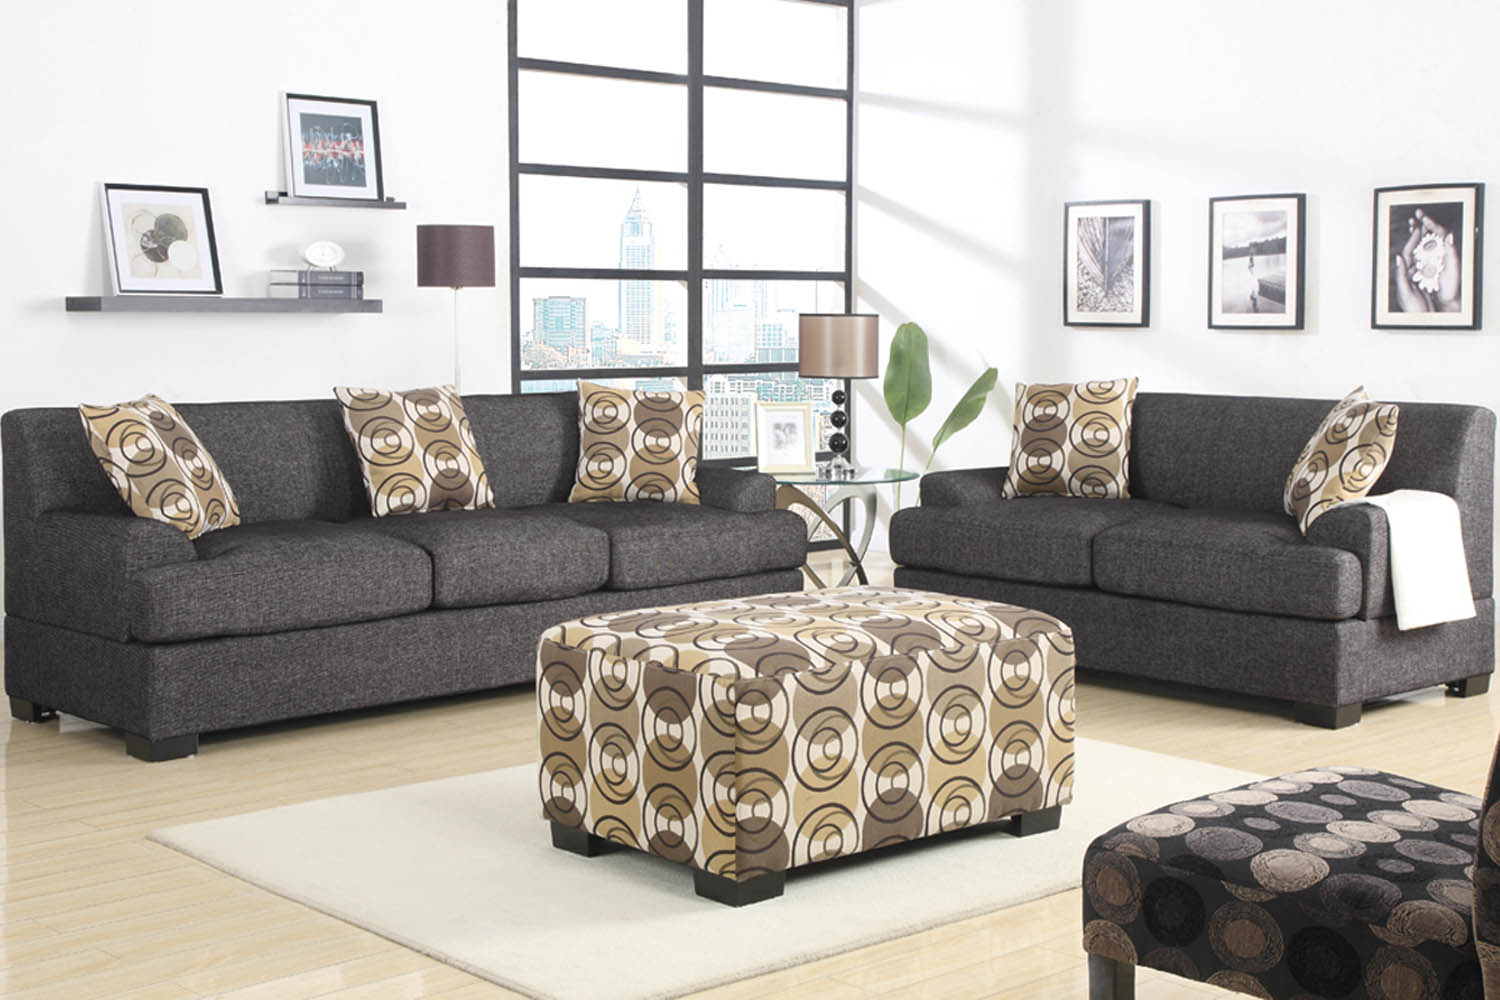 2 piece grey sofa set - Gray modern living room furniture ...